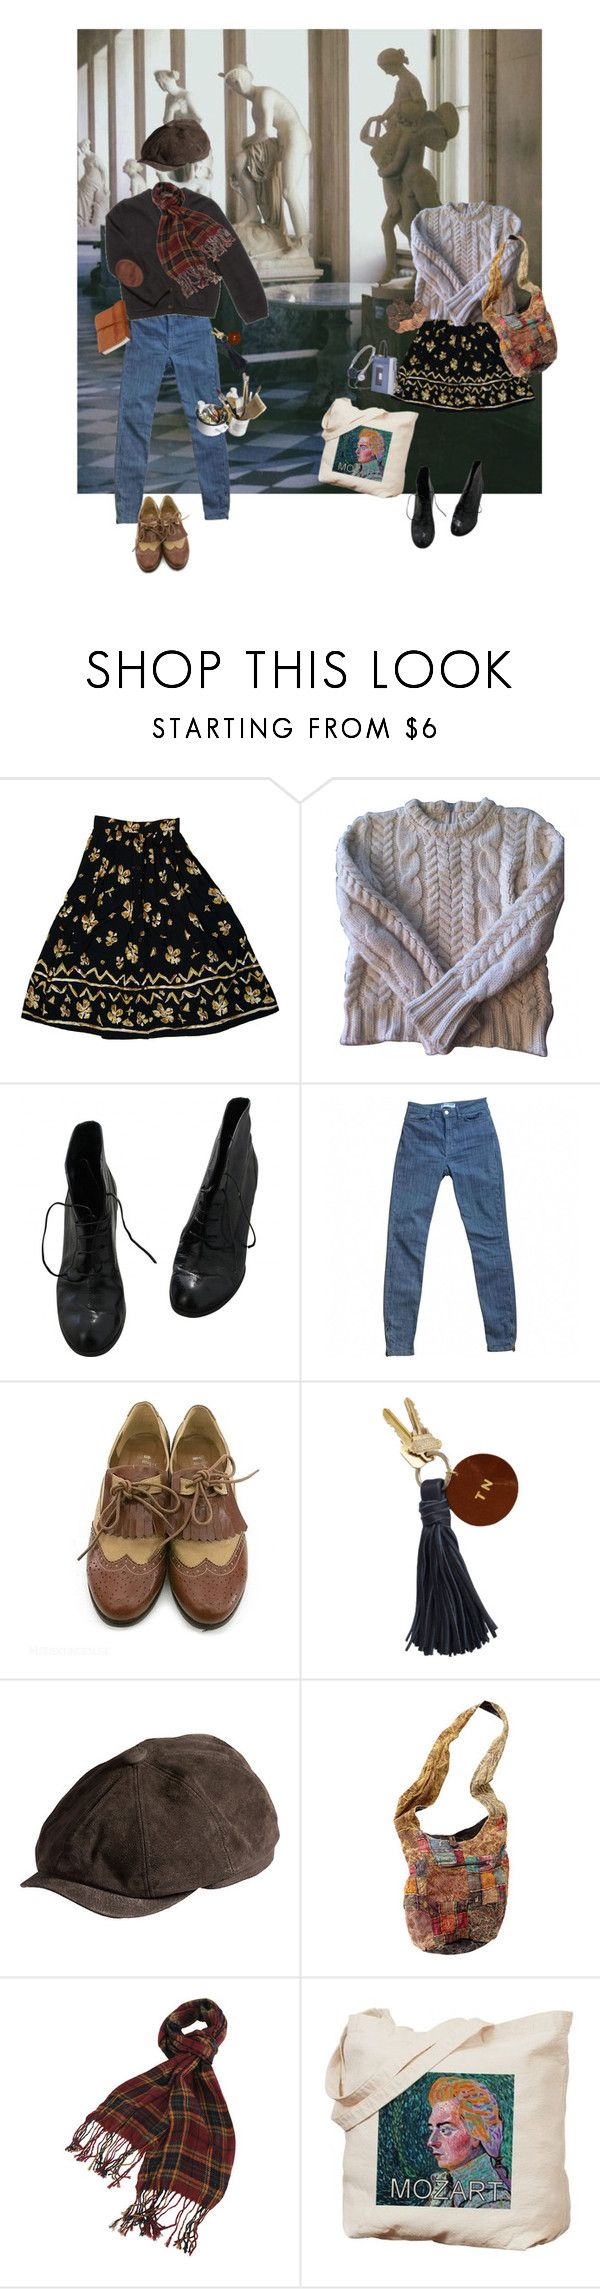 """To Run Away or Stay Today?"" by planets-n-stars ❤ liked on Polyvore featuring Claudie Pierlot, Fendi, American Apparel, Kova & T, Overland Sheepskin Co., Forever 21 and Mason's"